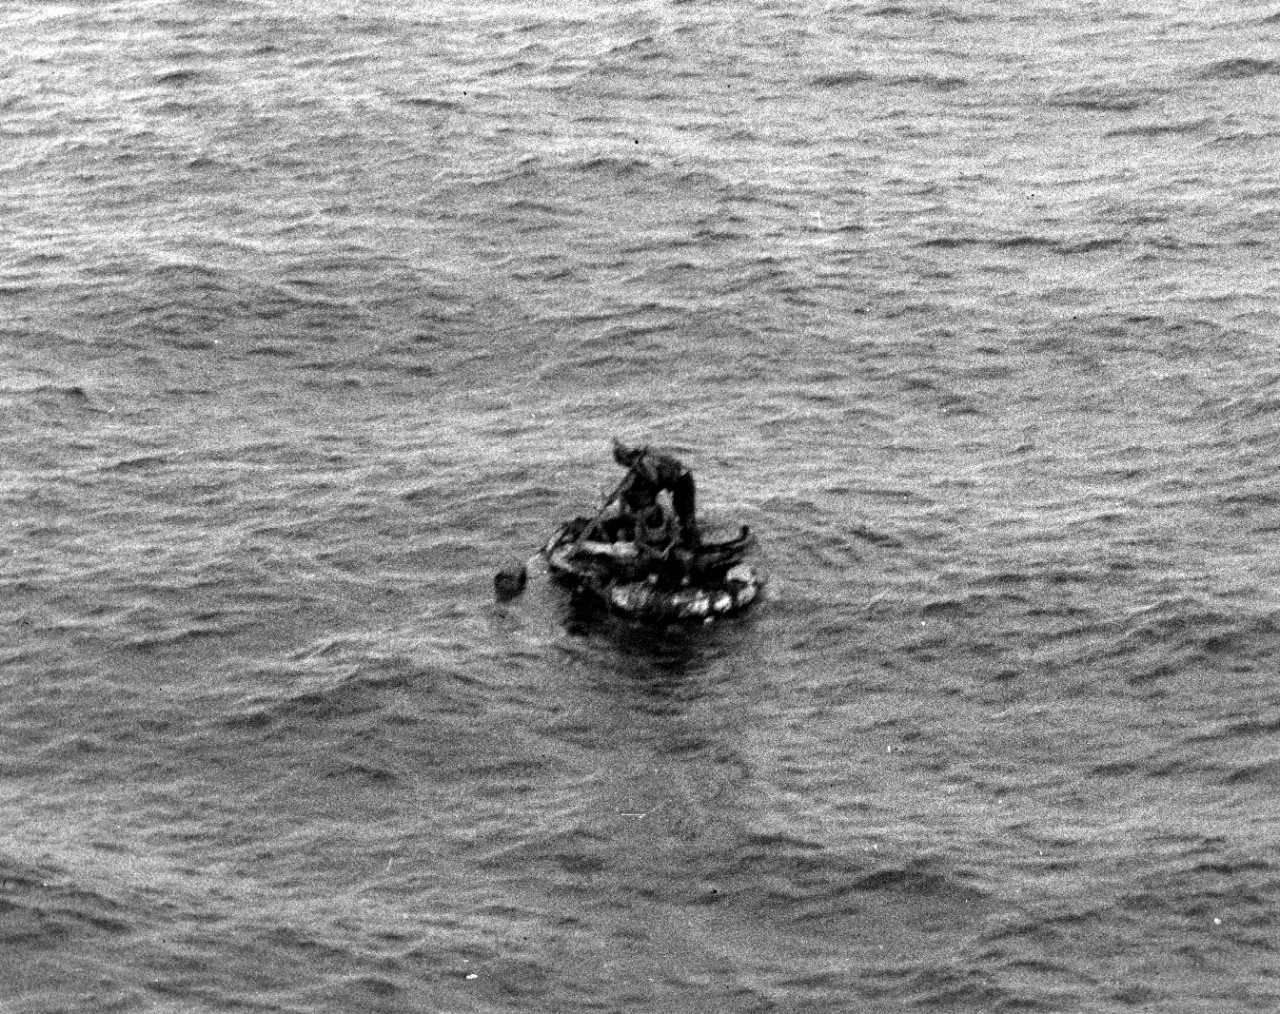 As first seen from Helm's bridge on 17 May 1942, one of the four survivors on a raft from the sunken oiler Neosho stands to attract attention. (U.S. Navy Photograph 80-G-32131, National Archives and Records Administration, Still Pictures Division, College Park, Md.)